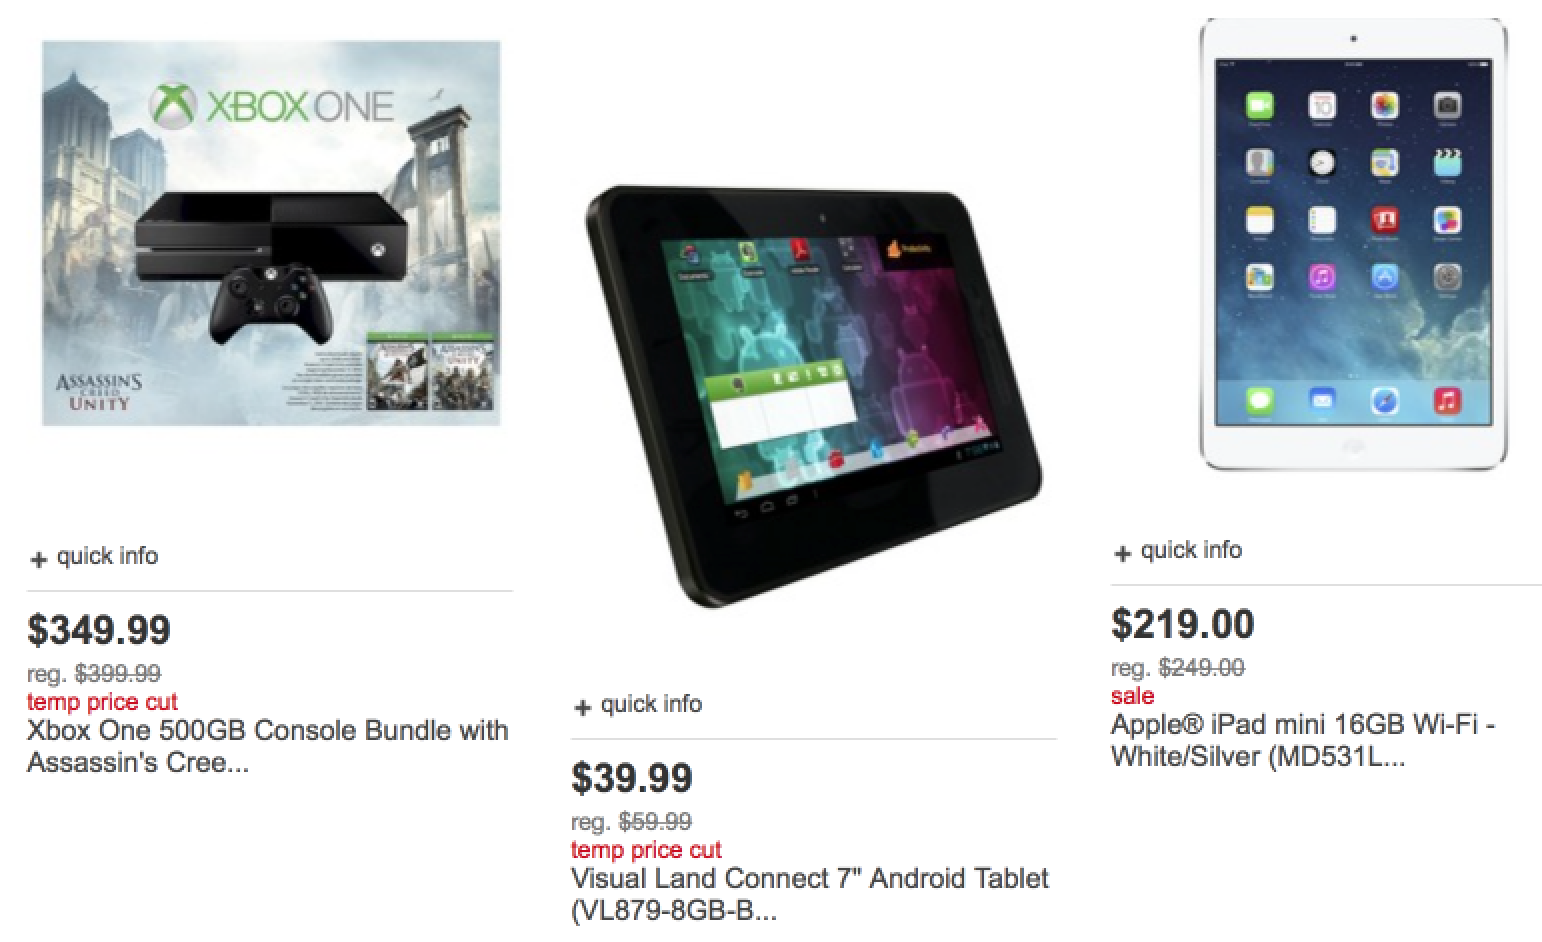 http://www.thebinderladies.com/2014/12/target-com-awesome-deals-on-electronics.html